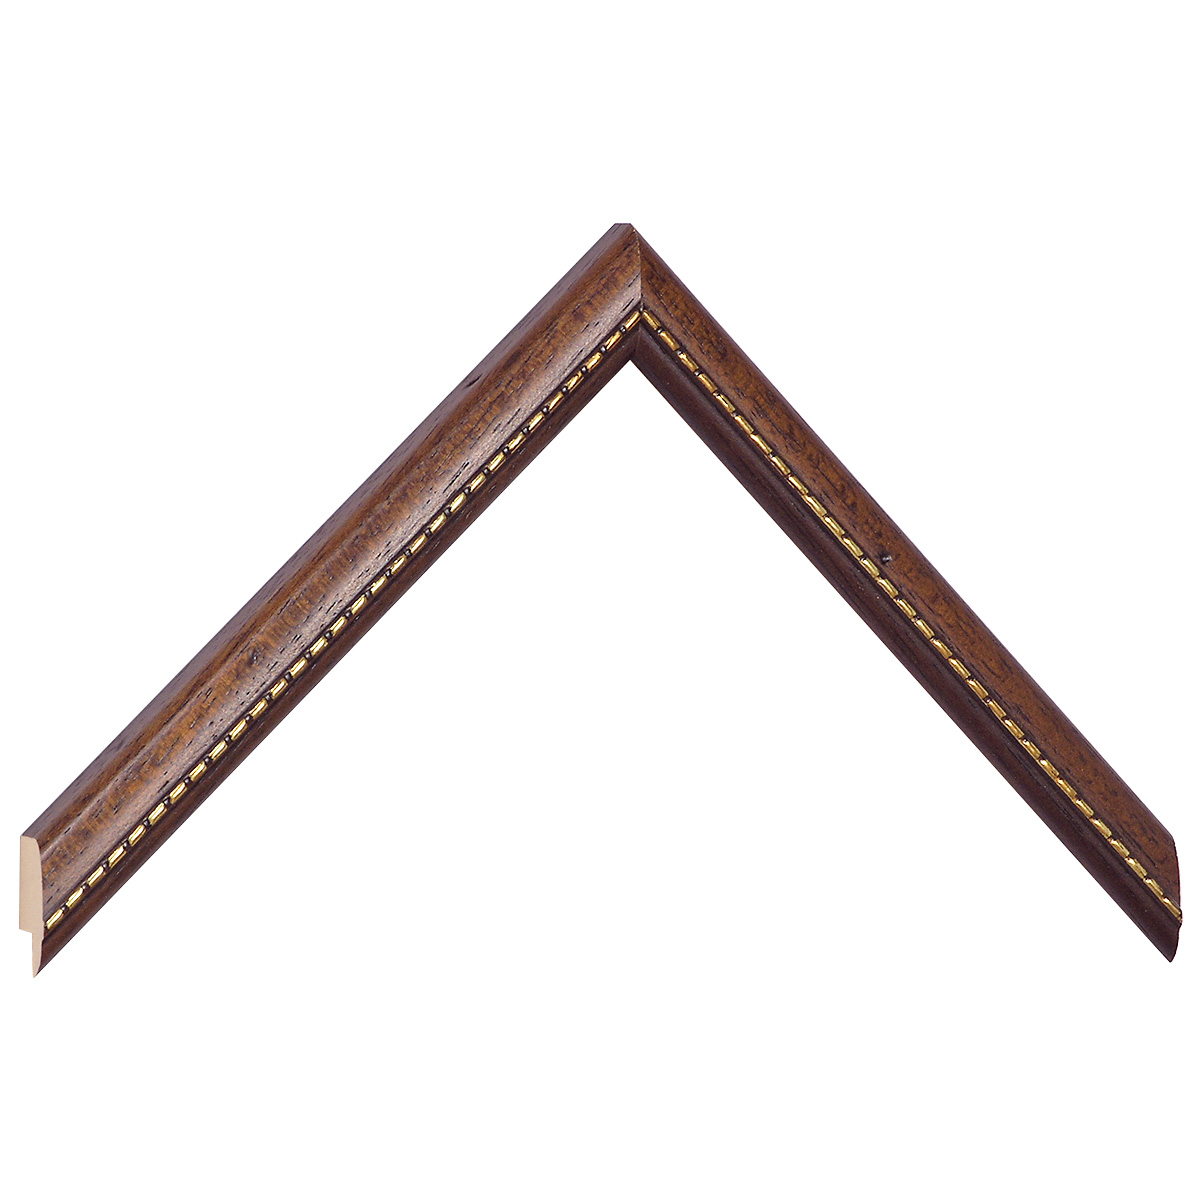 Moulding ayous 17mm - brown, gold decorative relief